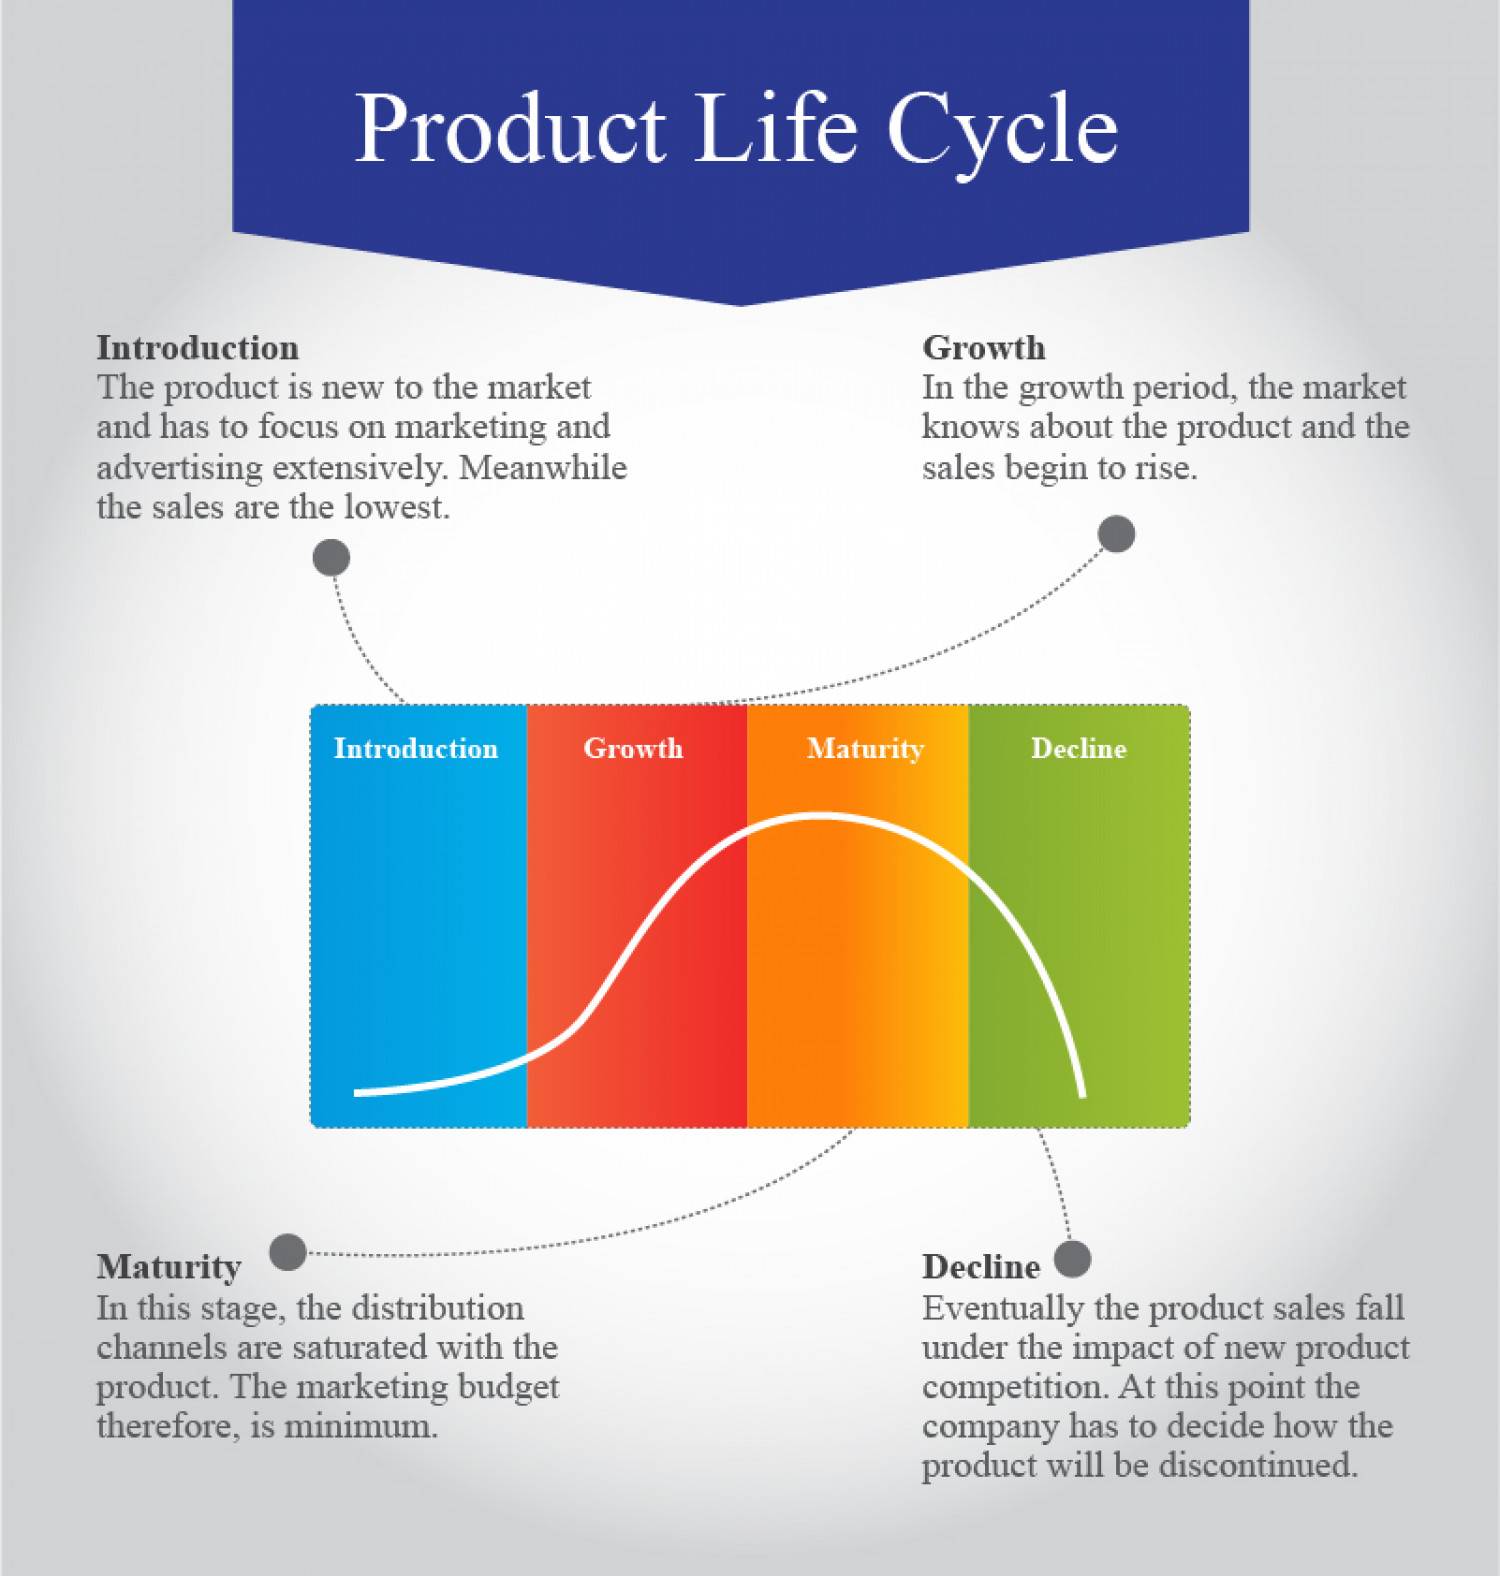 a products life cycle Benefits of product life cycle management by now, it is abundantly clear that to remain relevant and successfully manage a product through its life cycle, it is vital to have a clear system to manage all the data and streamline processes.